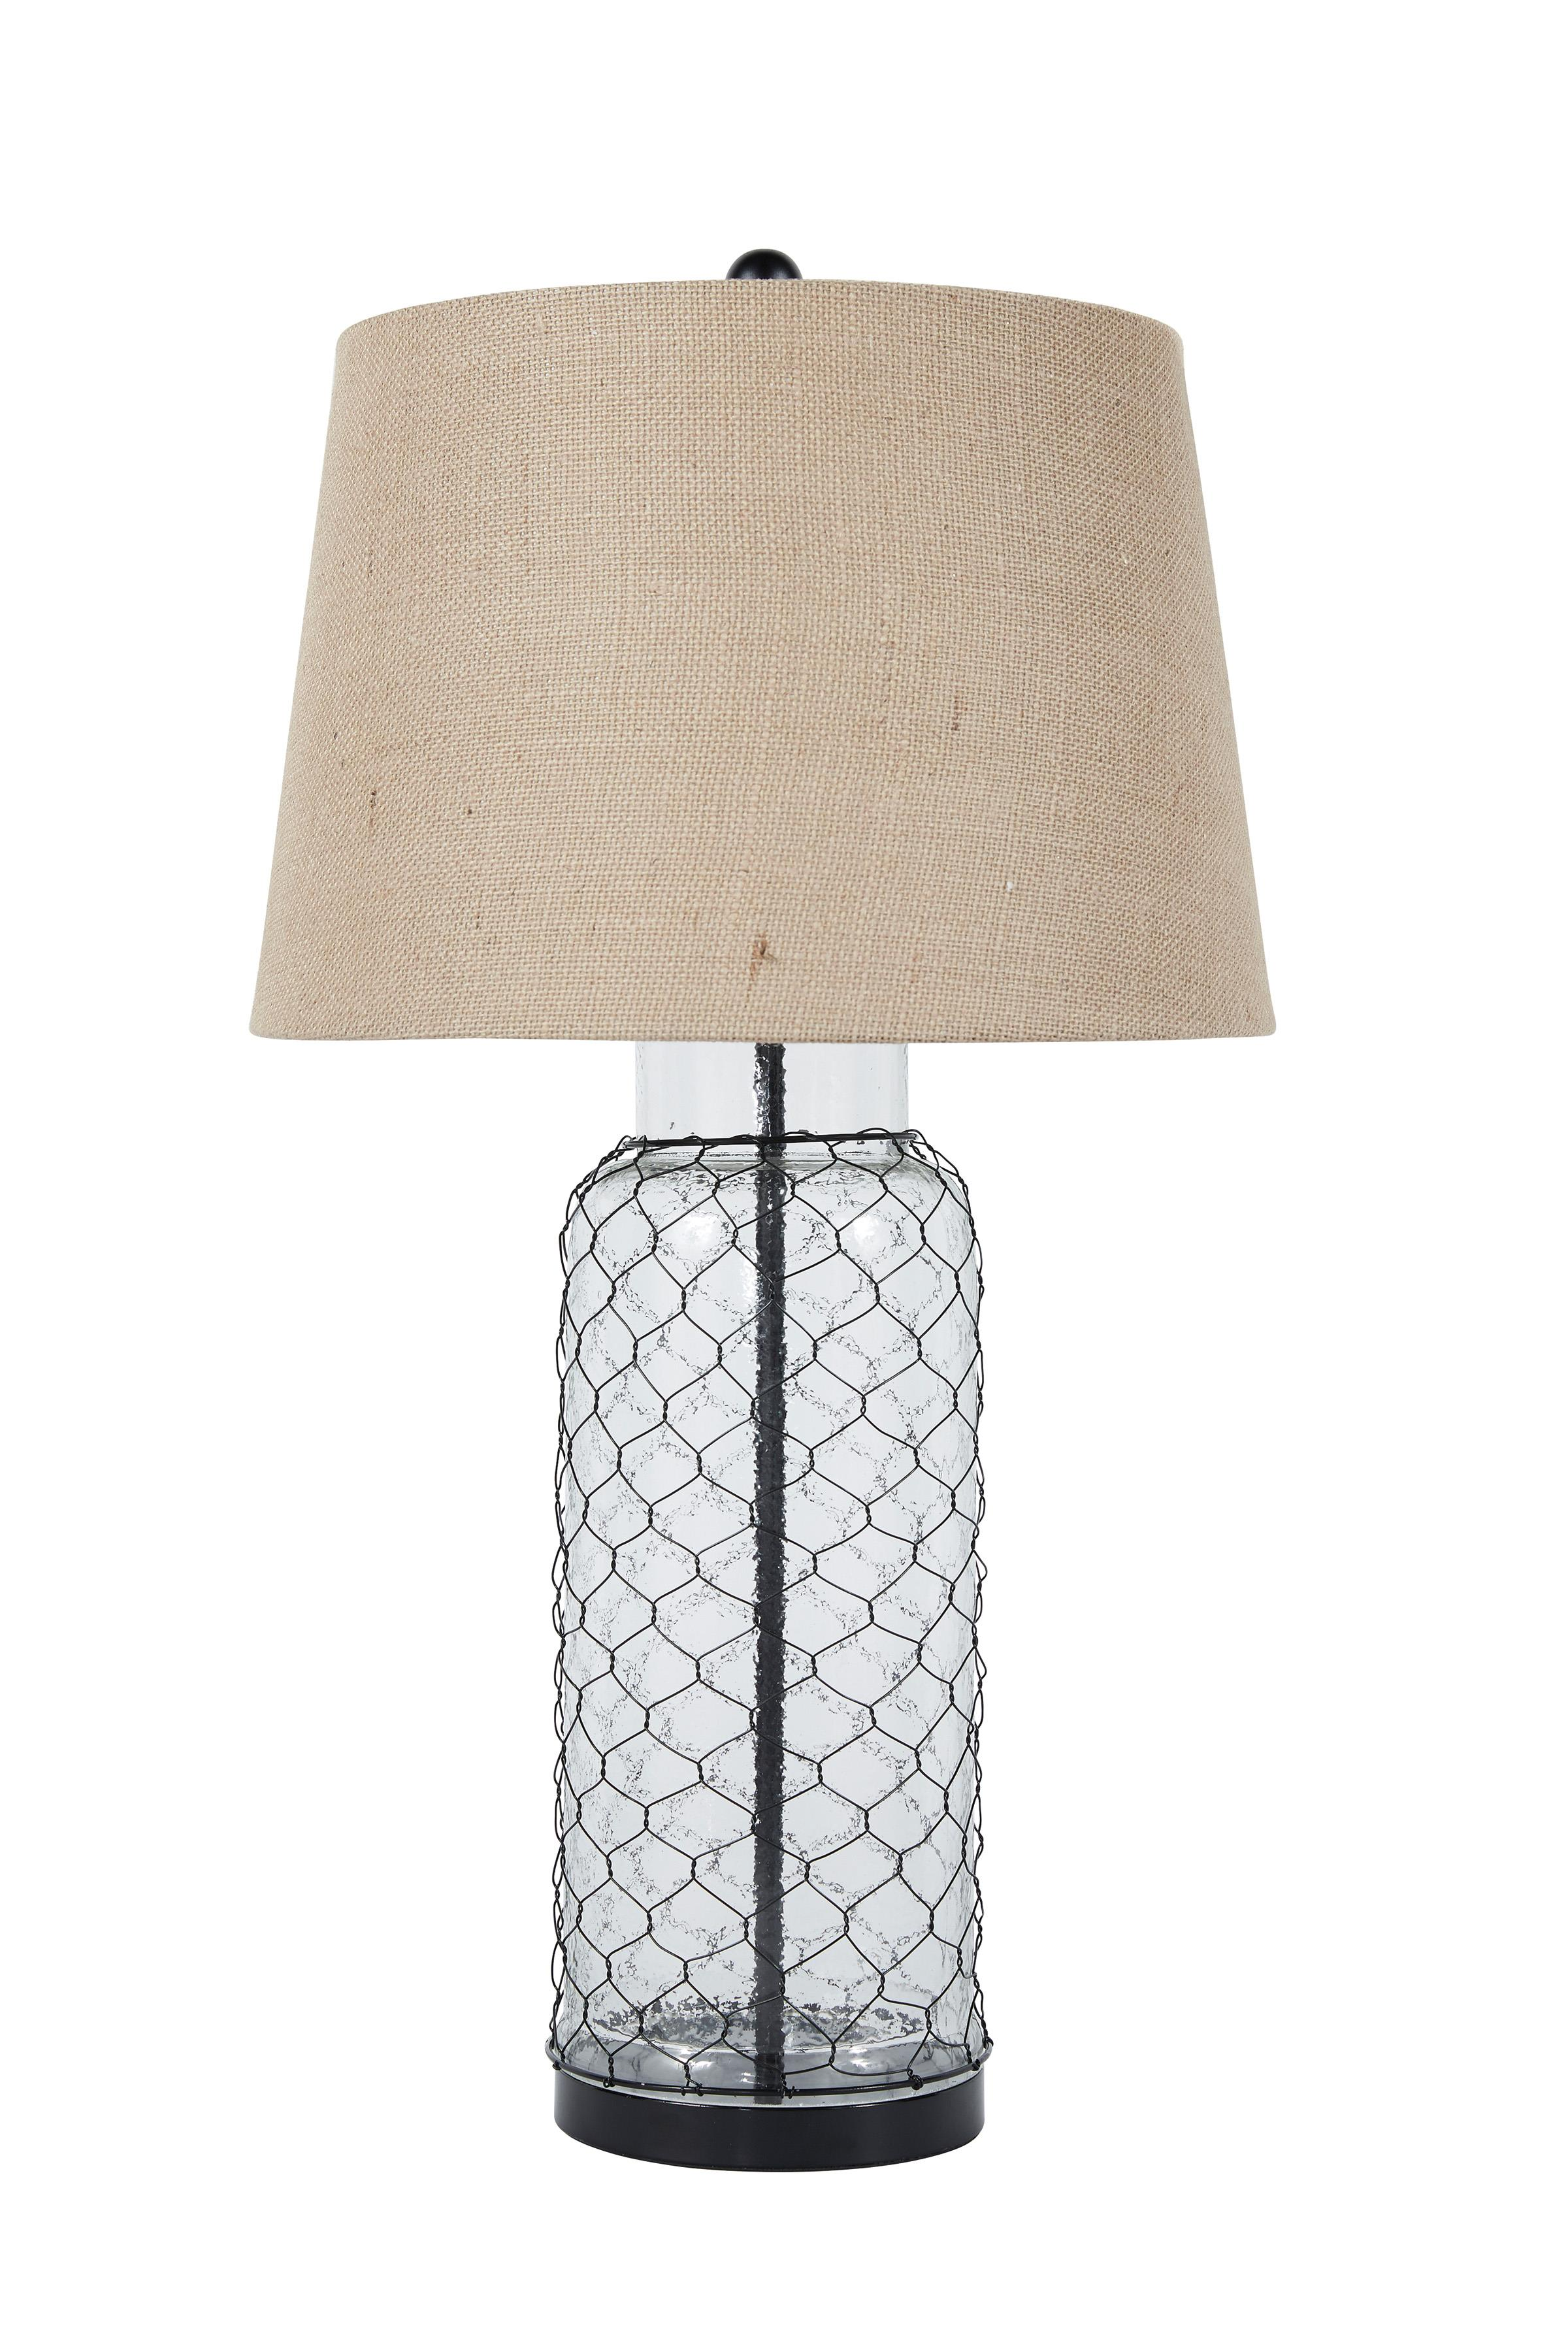 Signature Design by Ashley Lamps - Vintage Style Glass Table Lamp  - Item Number: L430114